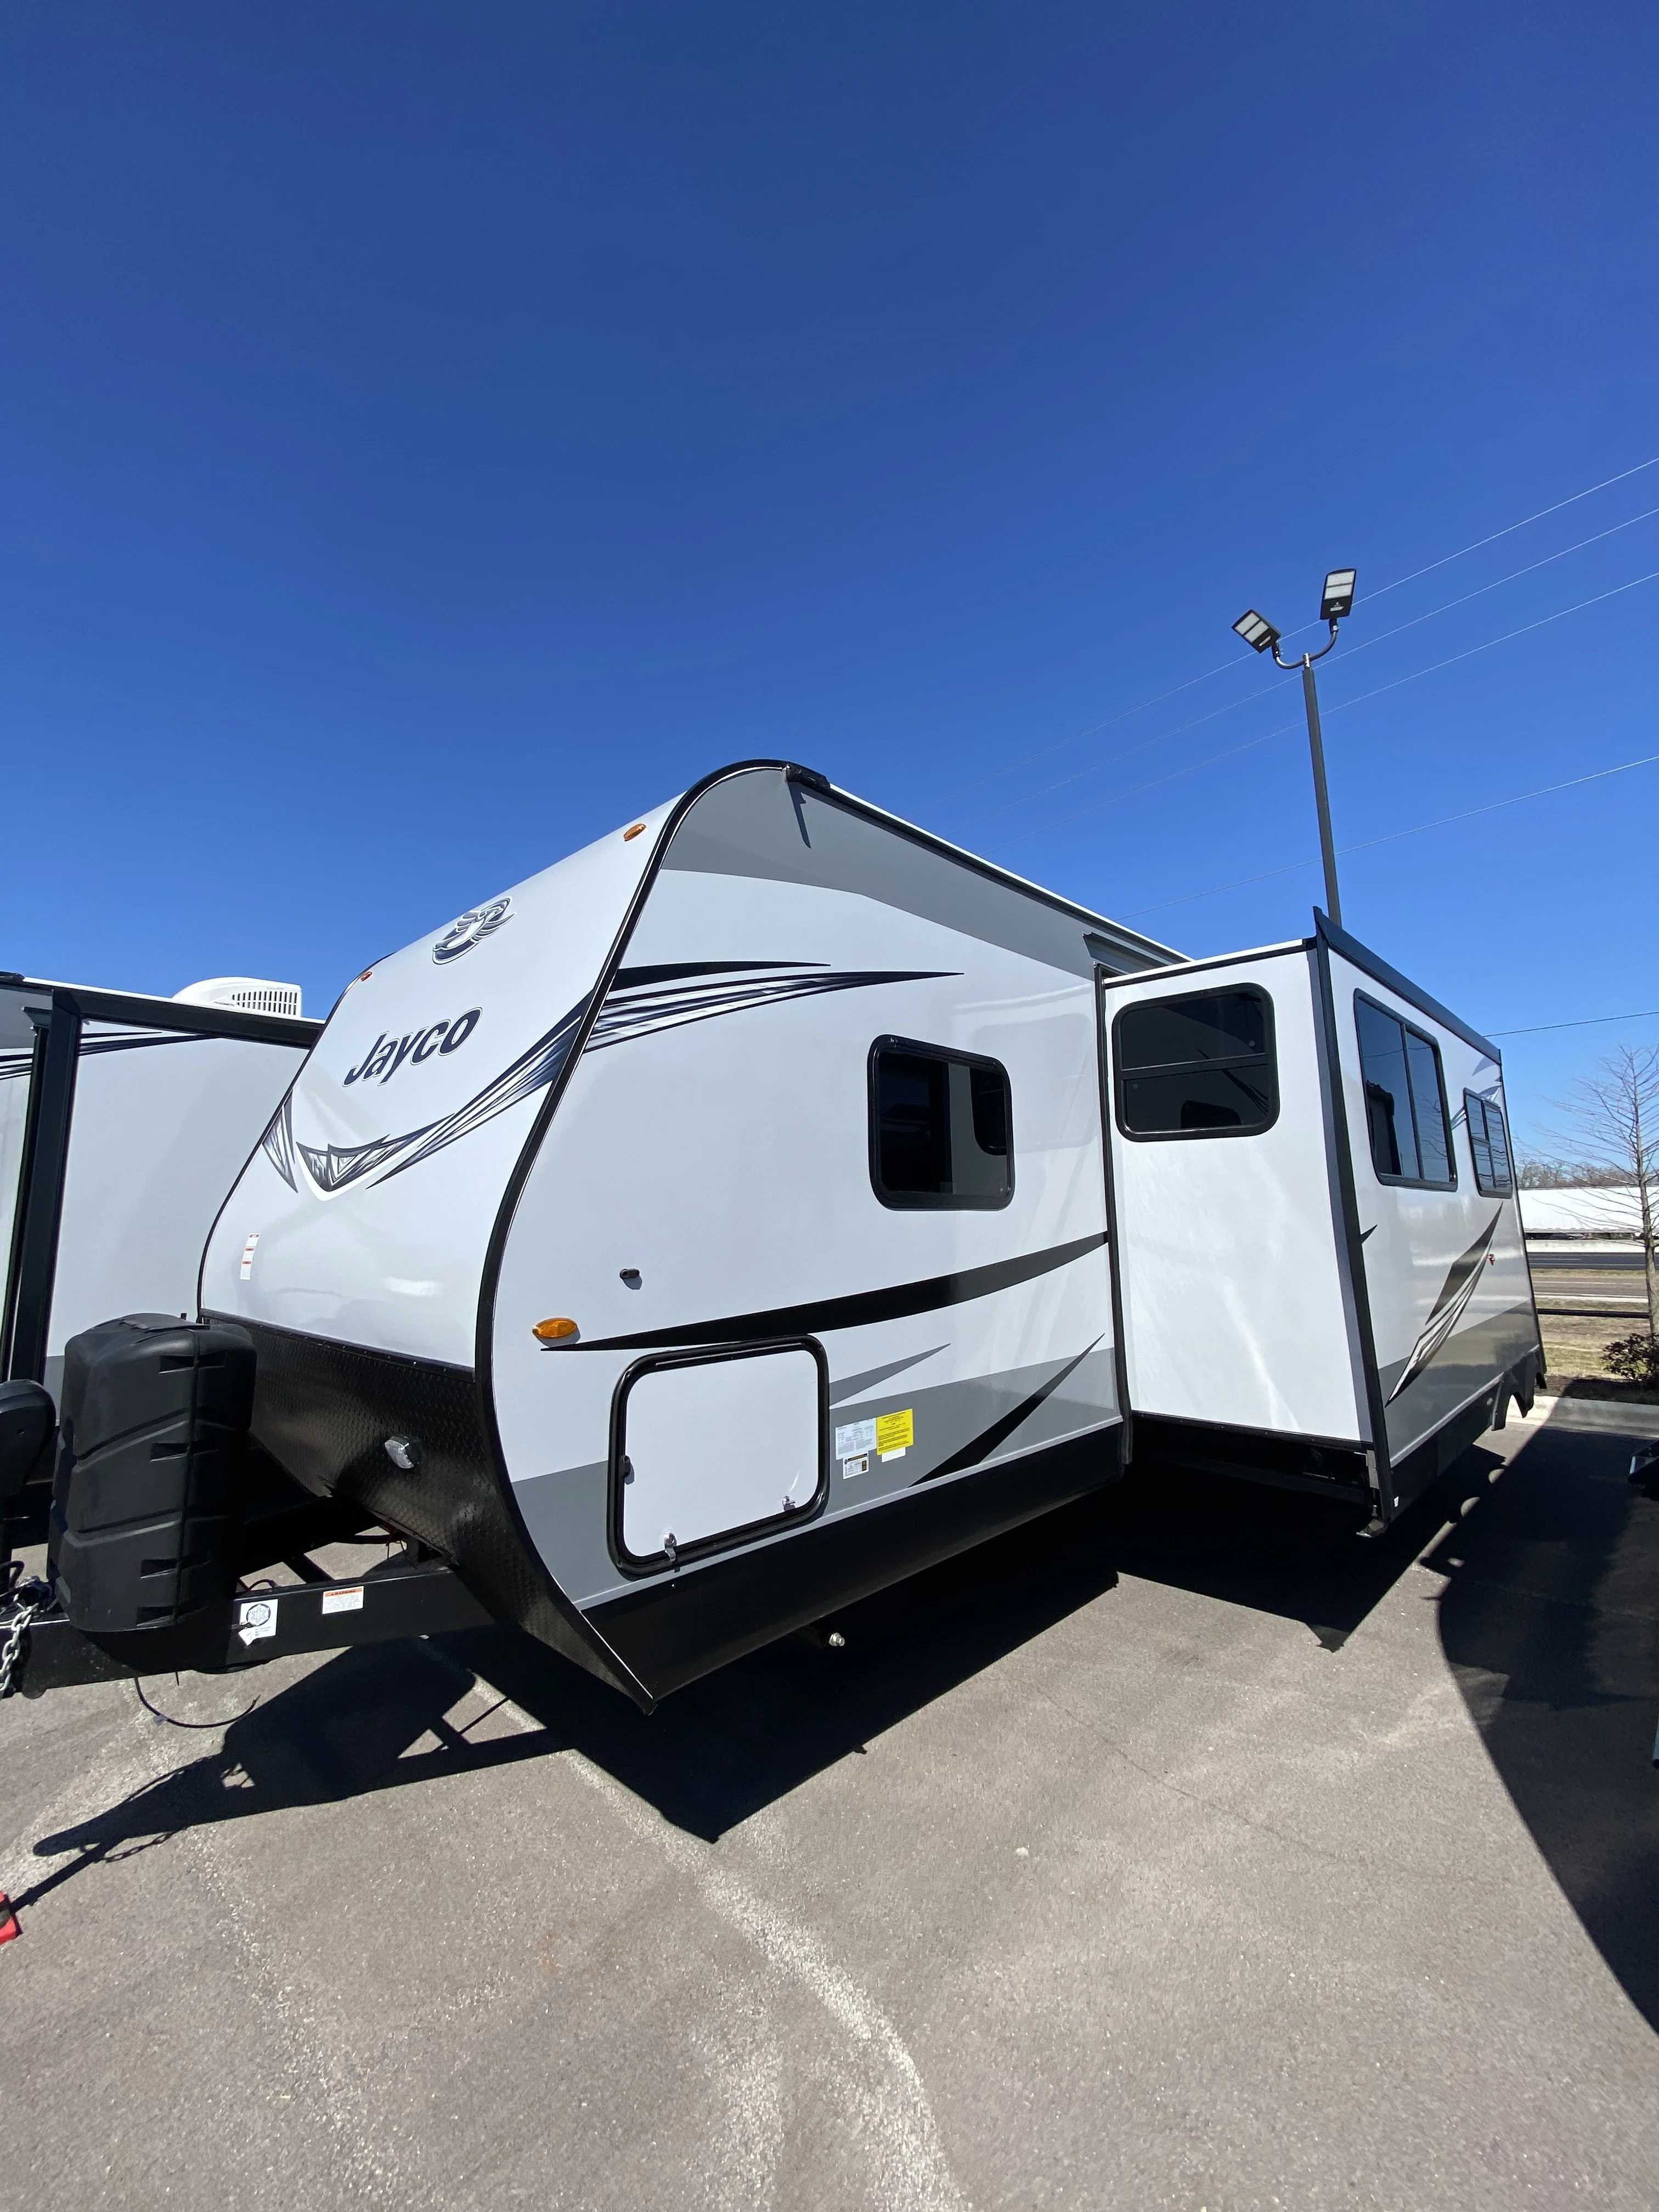 2021 Jayco Jay Feather 24BH - RVs for Sale   RVs and ...